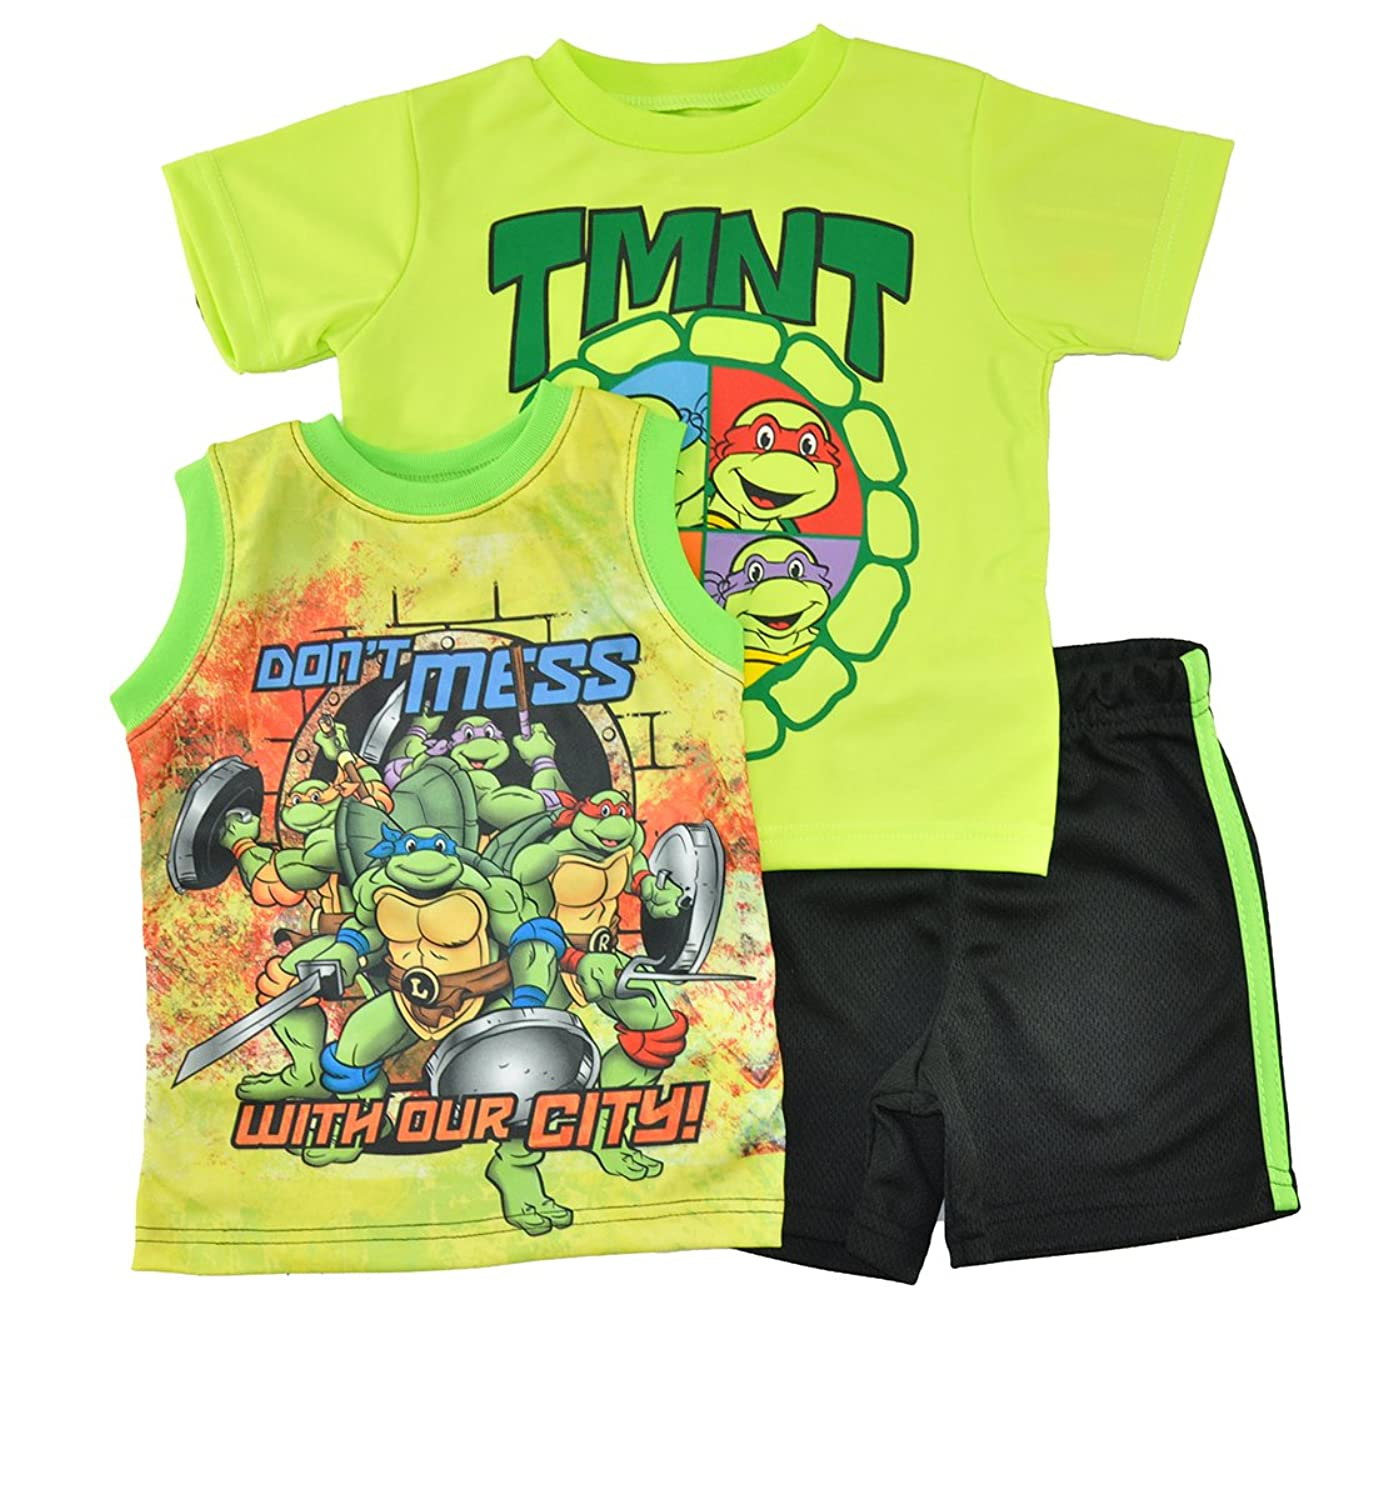 ニコロデオンボーイズ' Teenage Mutant Ninja Turtles 3個入りTop and Short Set